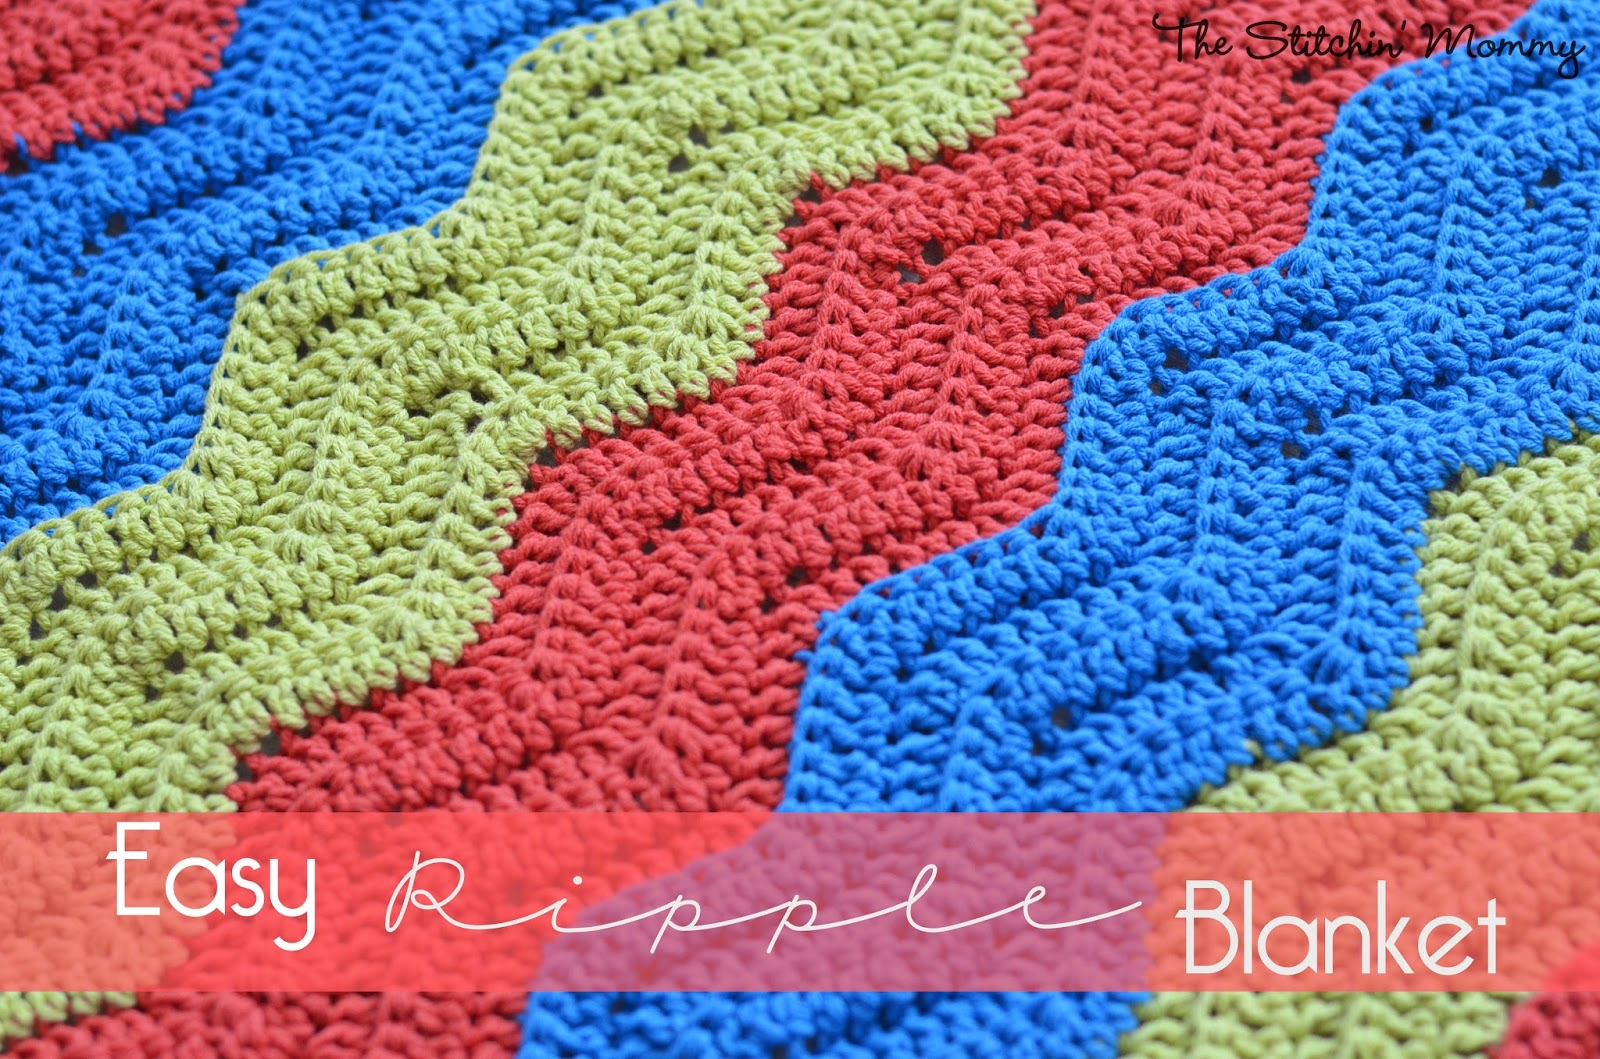 Easy Crochet Ripple Blanket BlogHer